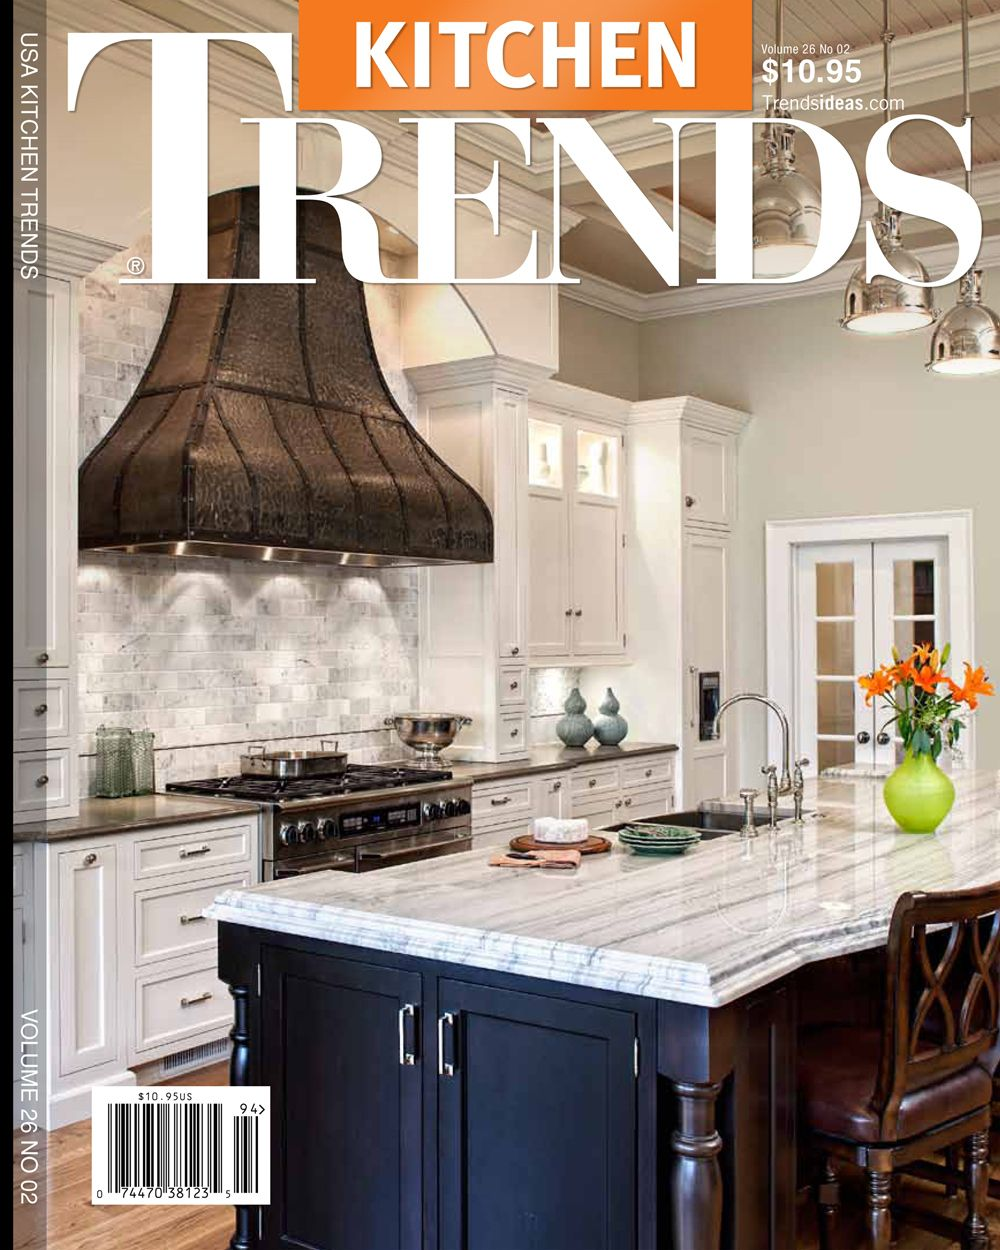 Bathroom Furniture Kitchen Remodel Magazine 55 kitchen remodel magazine best interior paint brands check more at http